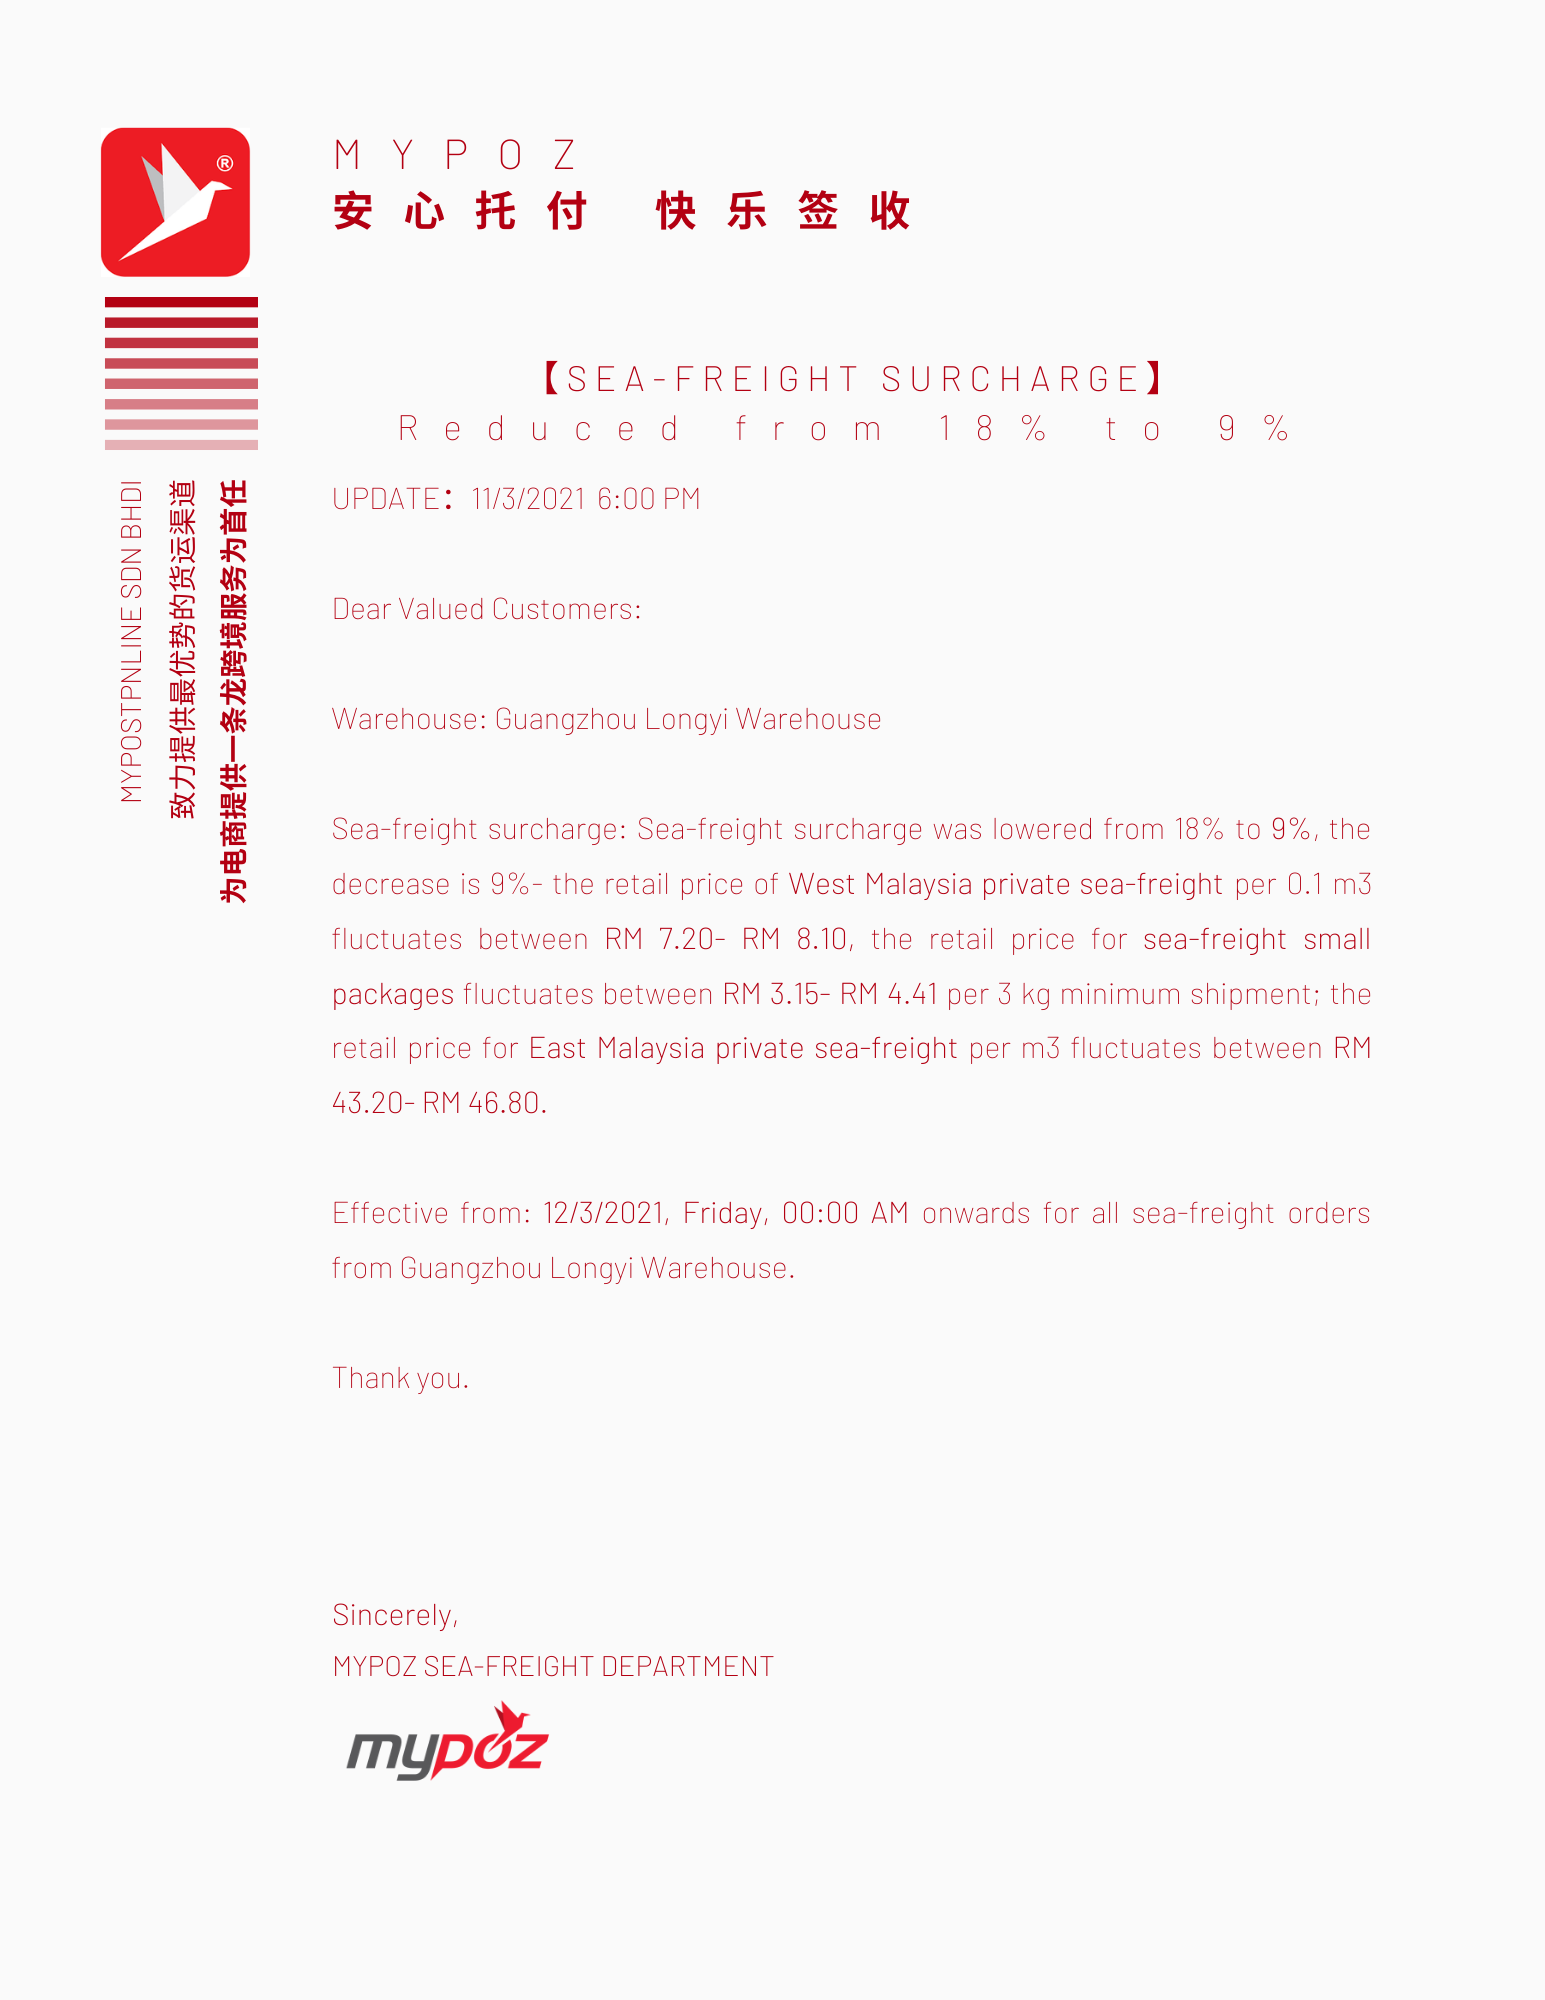 【NOTICE】SEA-FREIGHT SURCHARGE